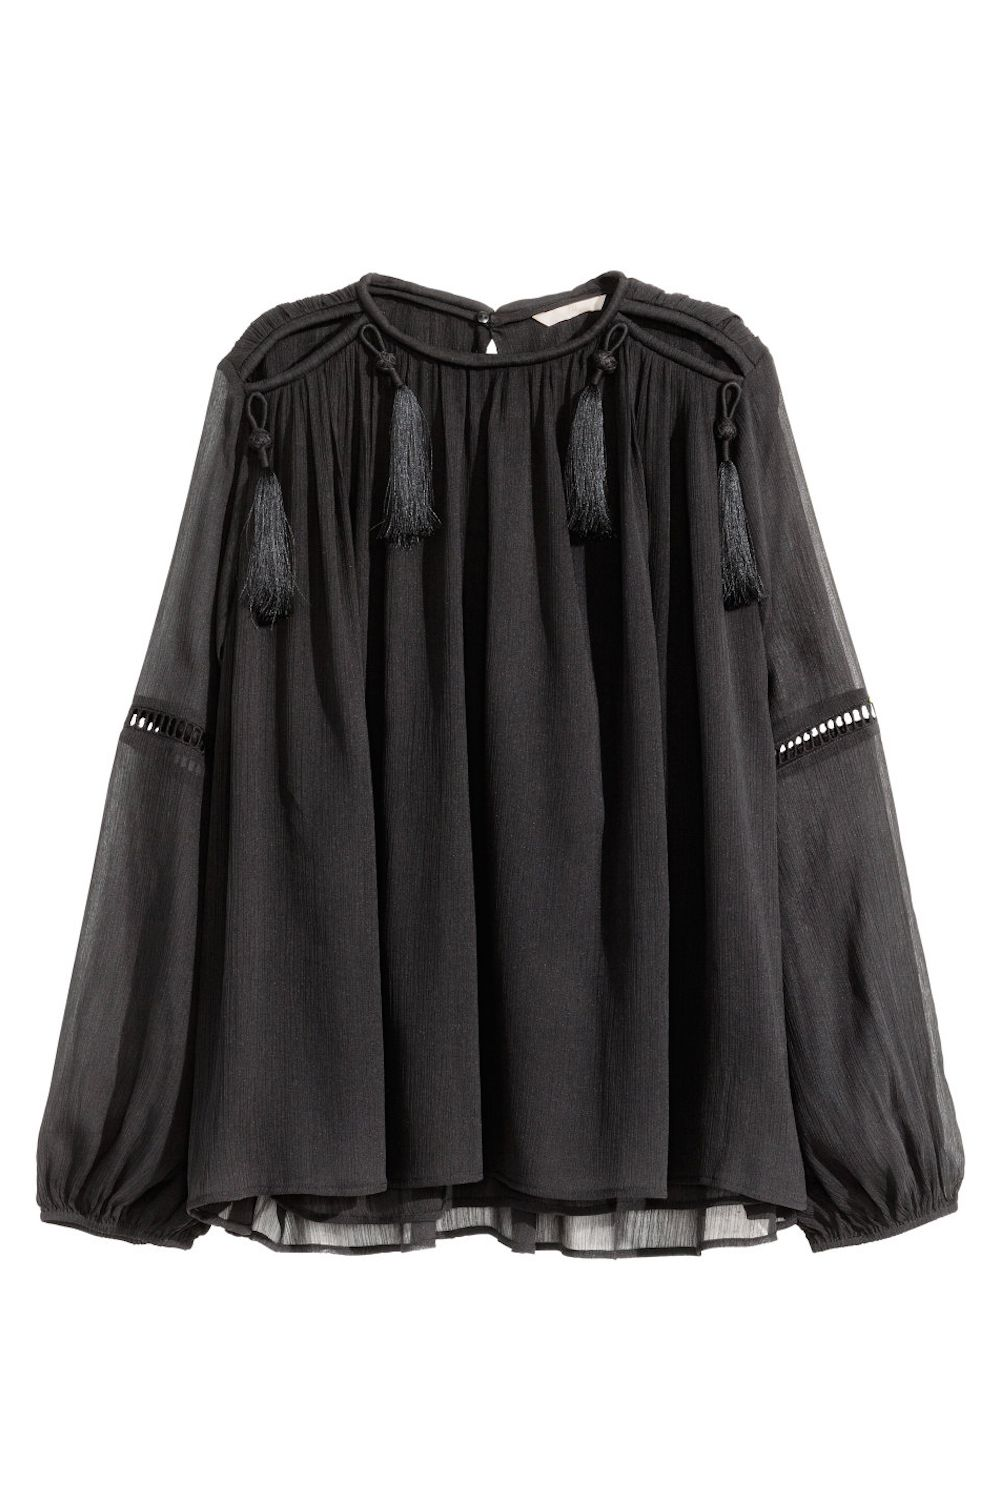 "<p>A black blouse is as versatile as it comes, but retro fringe accents make it fit for a standout lady.</p><p>H&M Chiffon Blouse, $49.99&#x3B; <a href=""http://www.hm.com/us/product/35500?article=35500-A"" target=""_blank"">hm.com</a>.</p>"